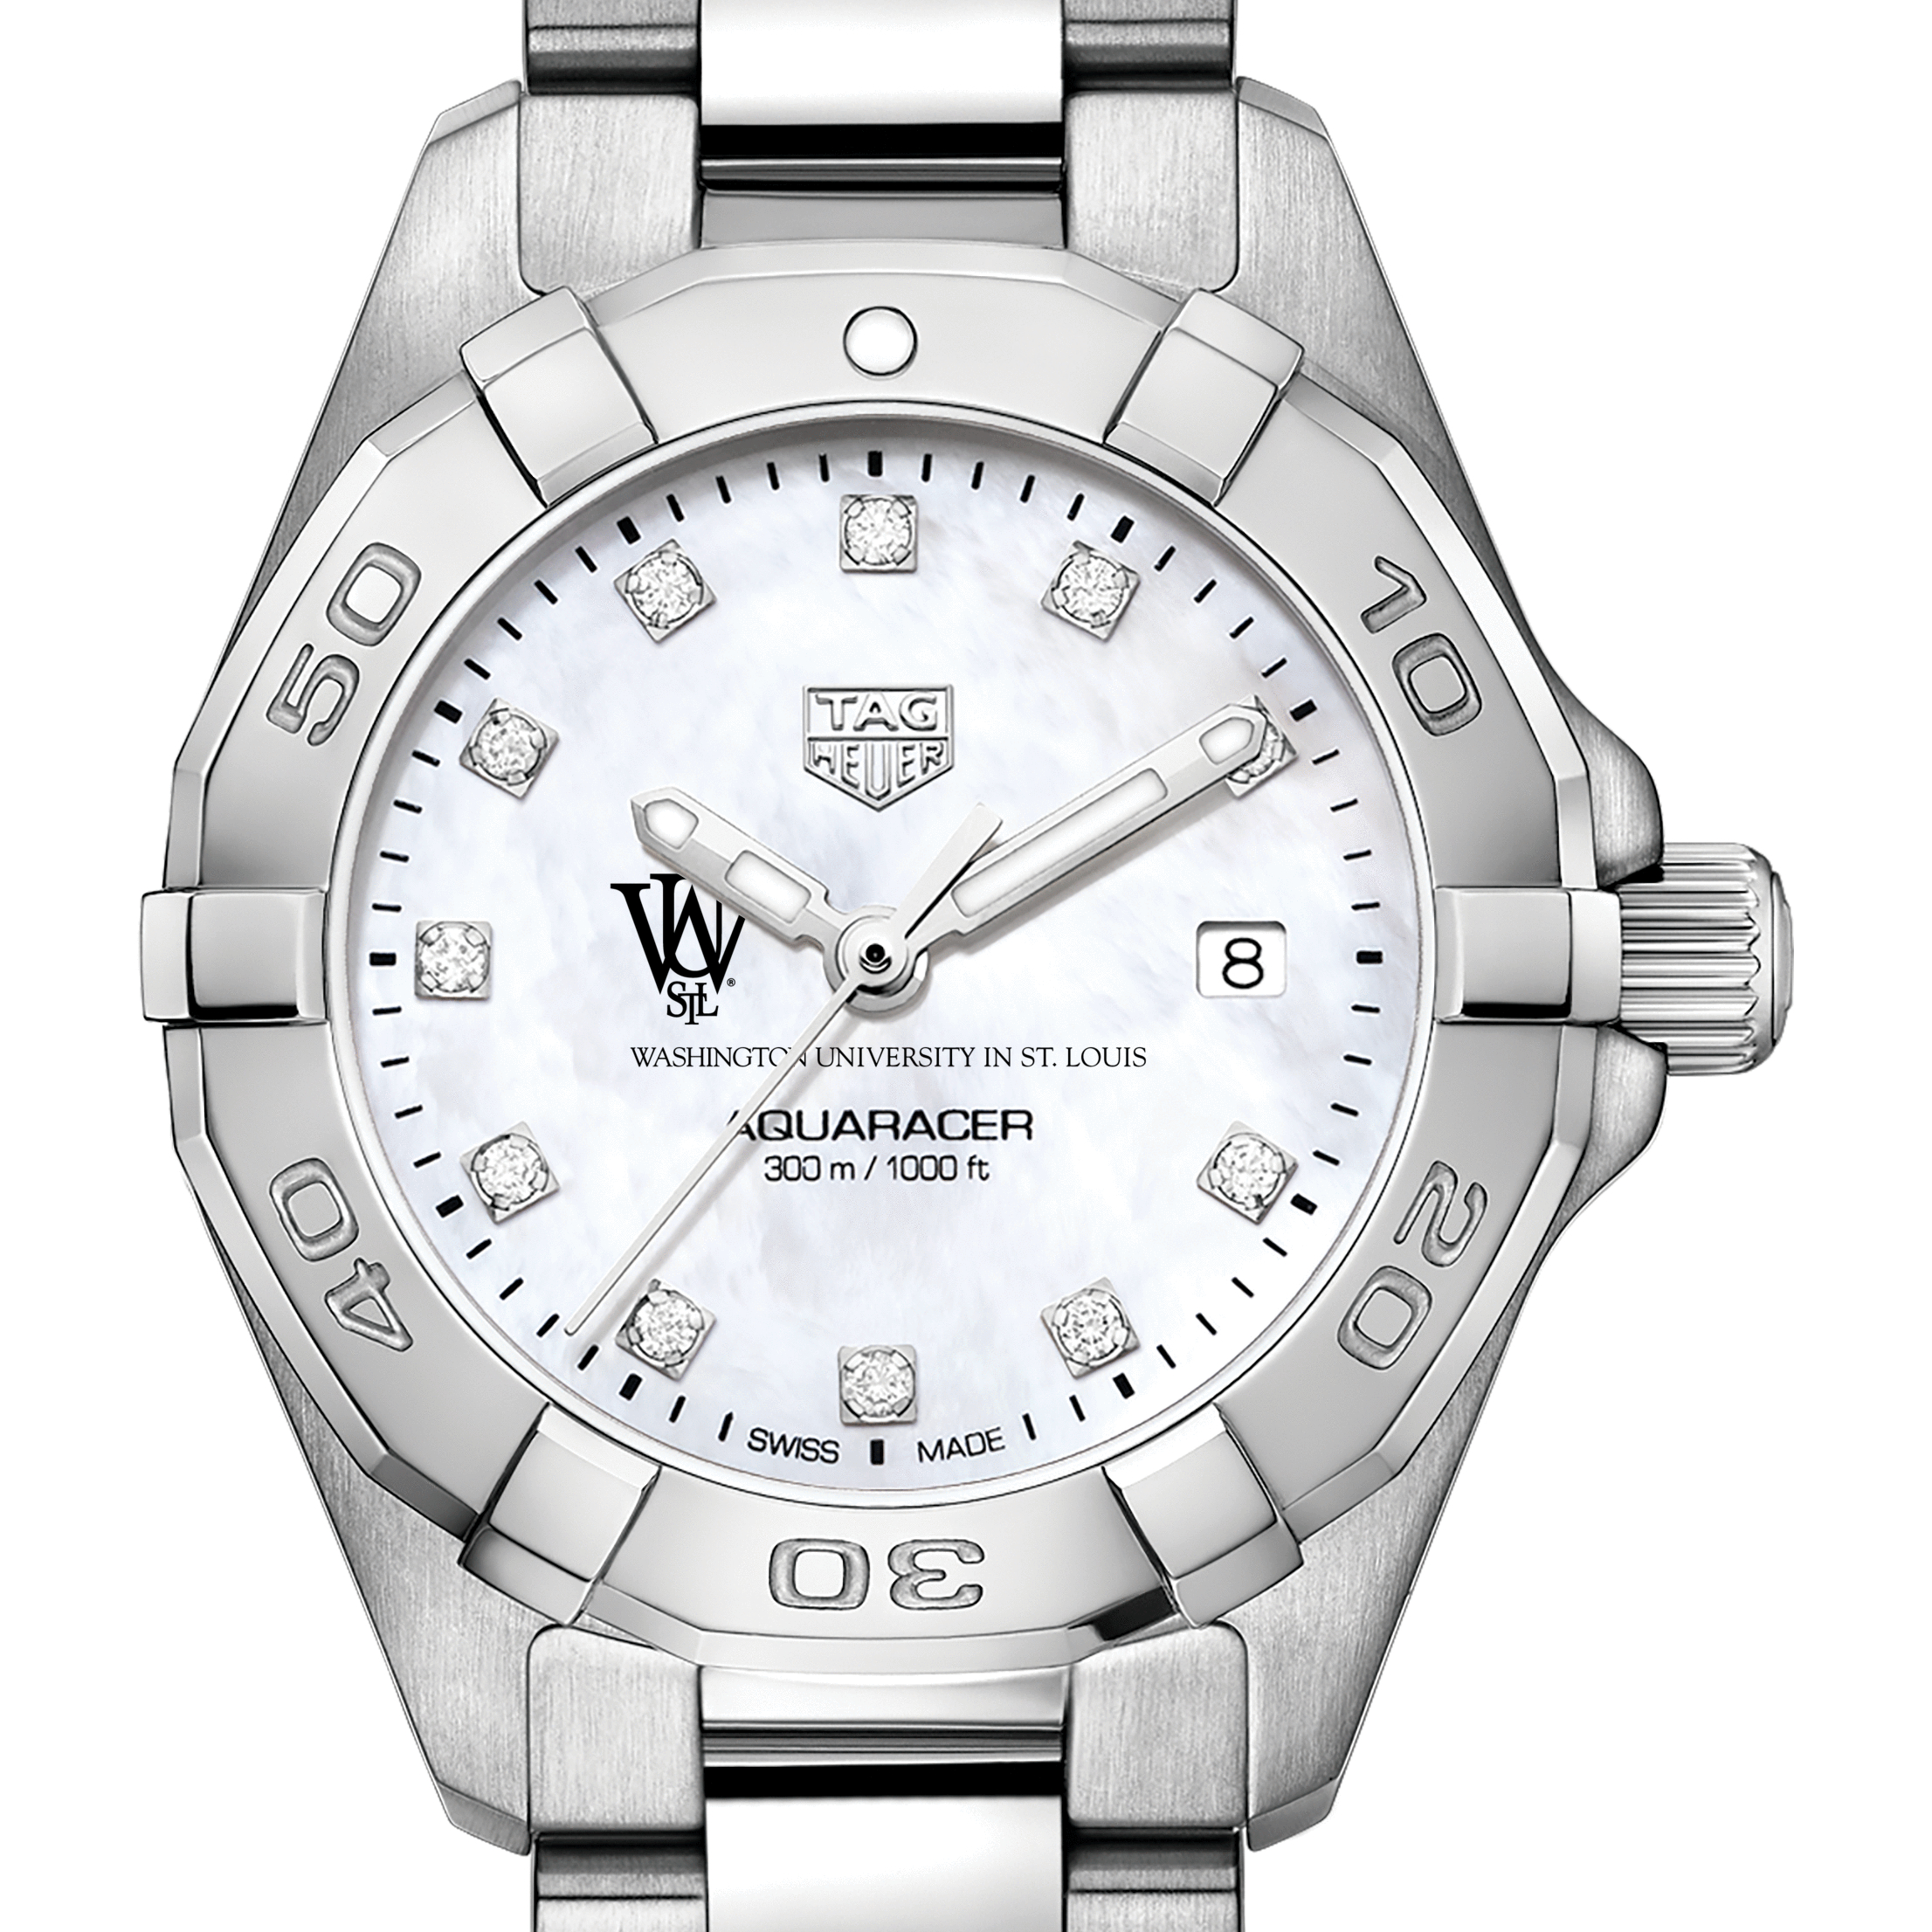 WUSTL Women's TAG Heuer Steel Aquaracer with MOP Diamond Dial